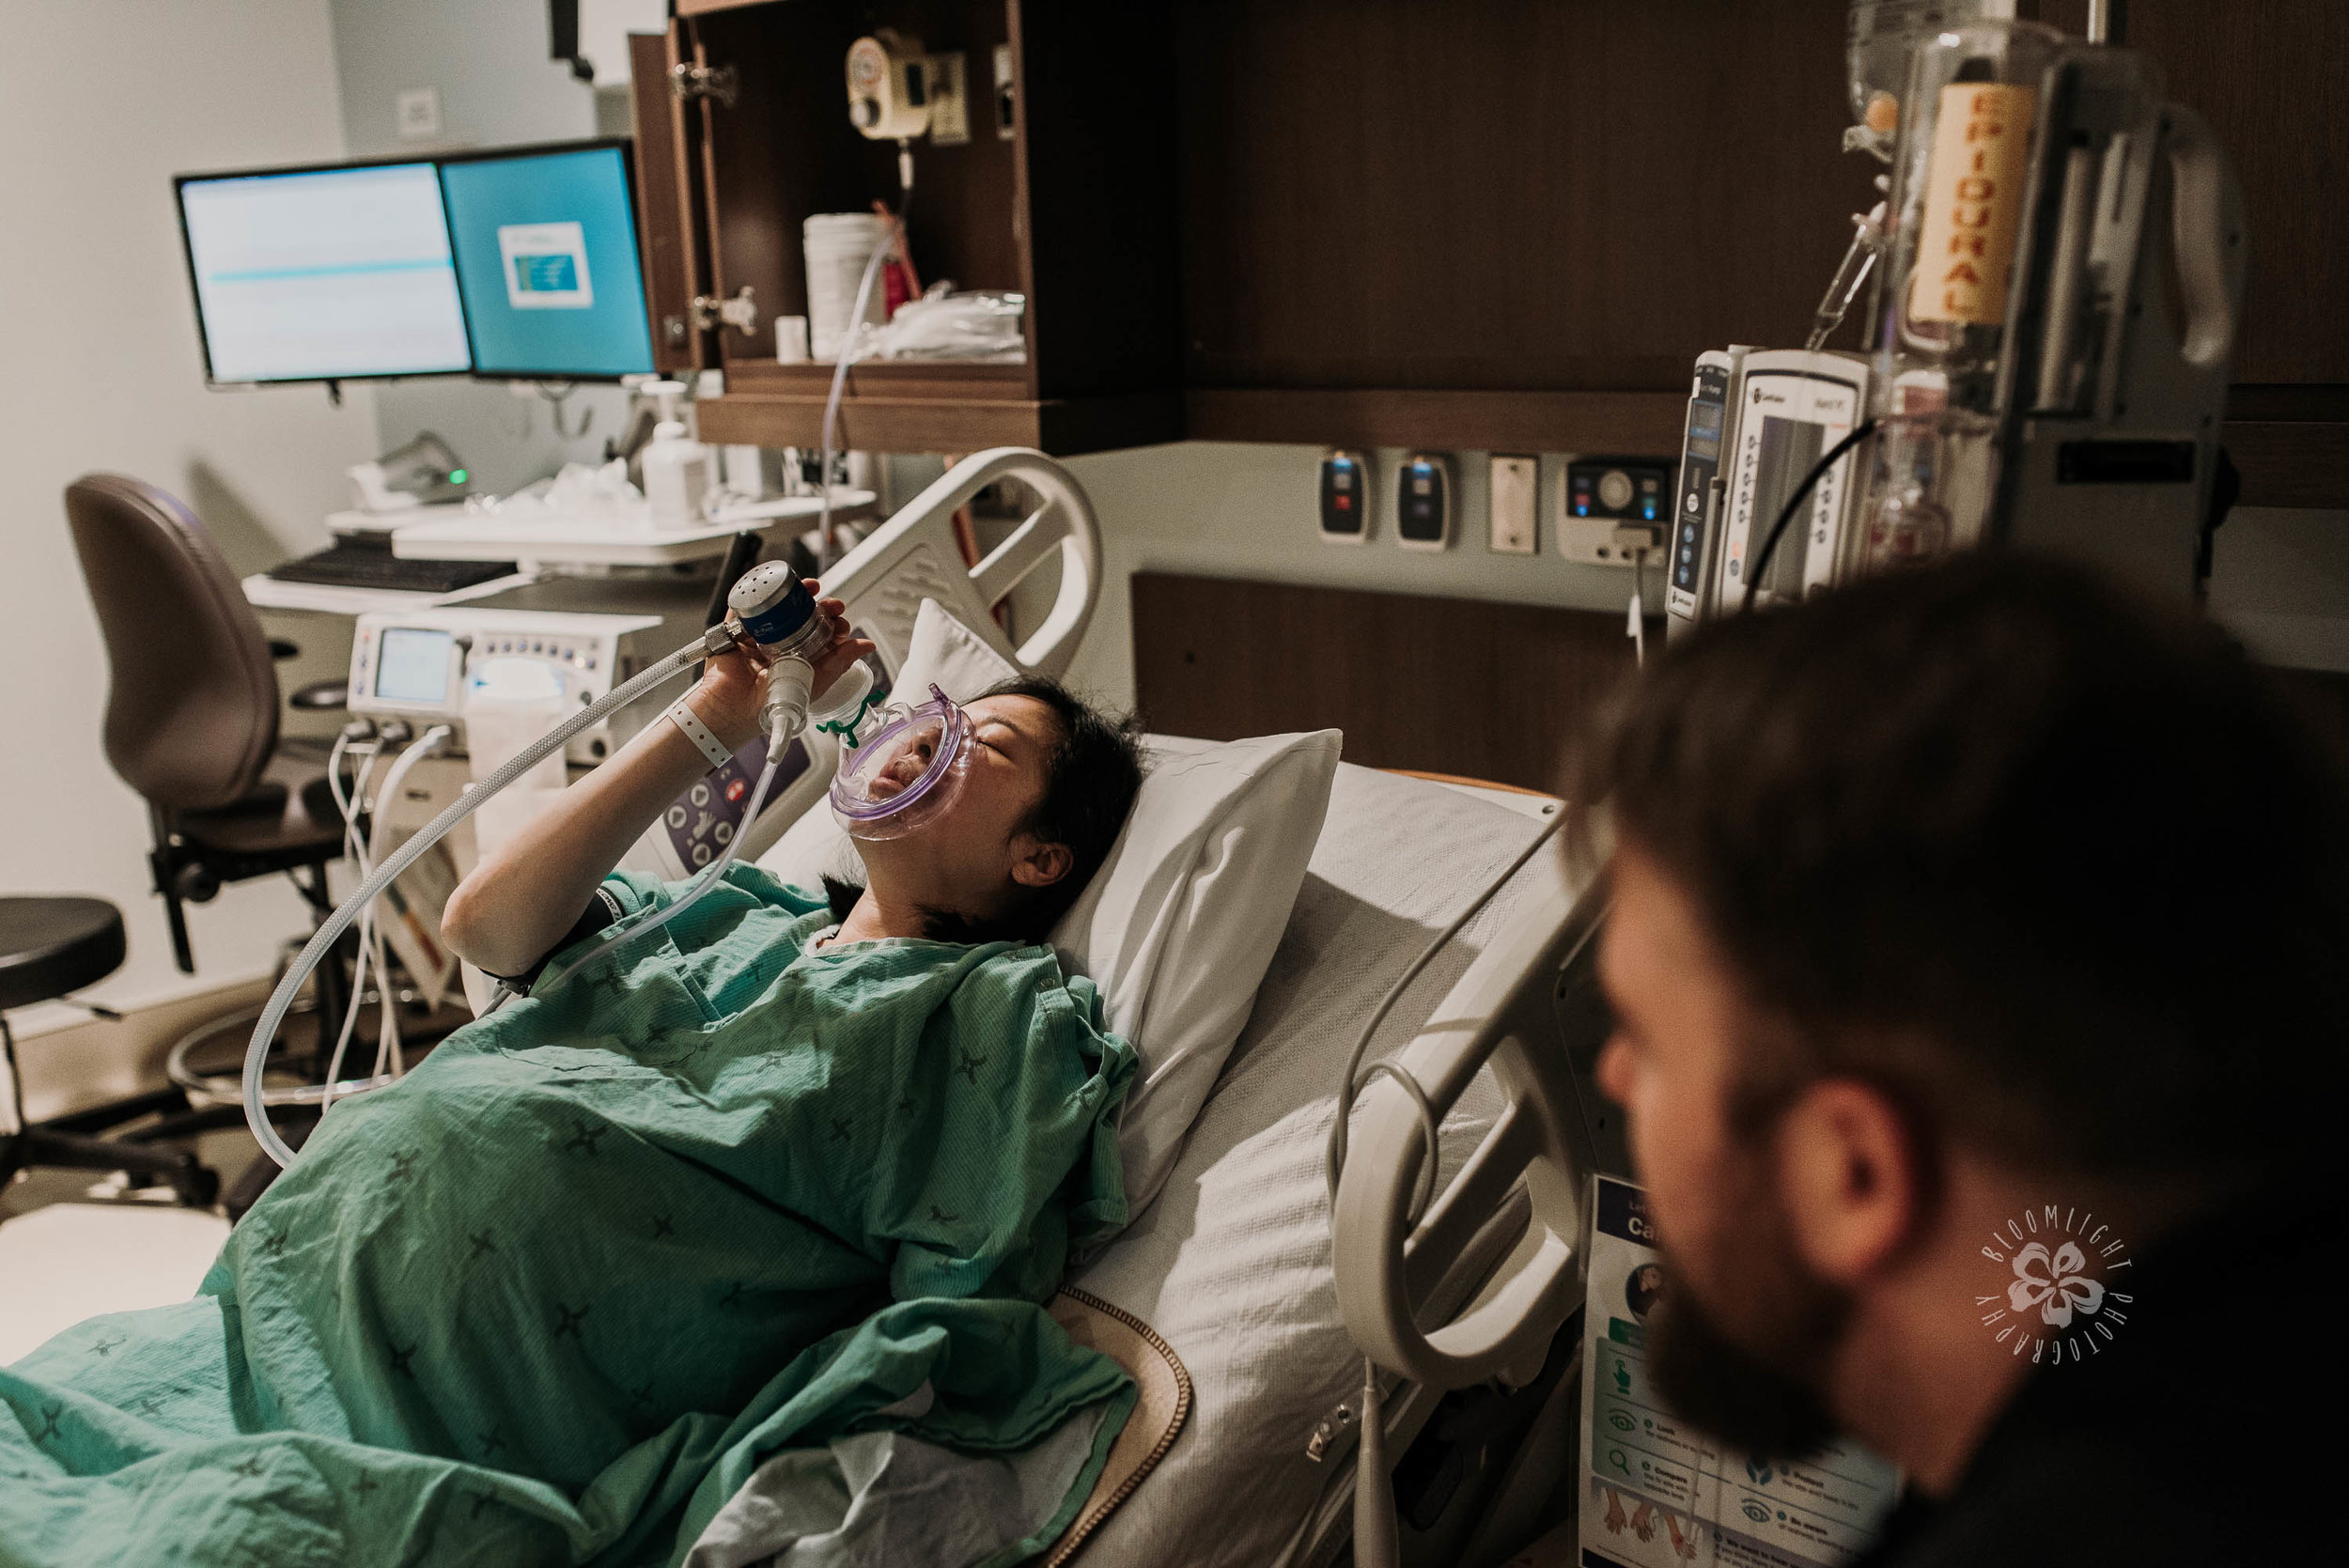 pregnant mom using gas to decrease labor pain in hospital